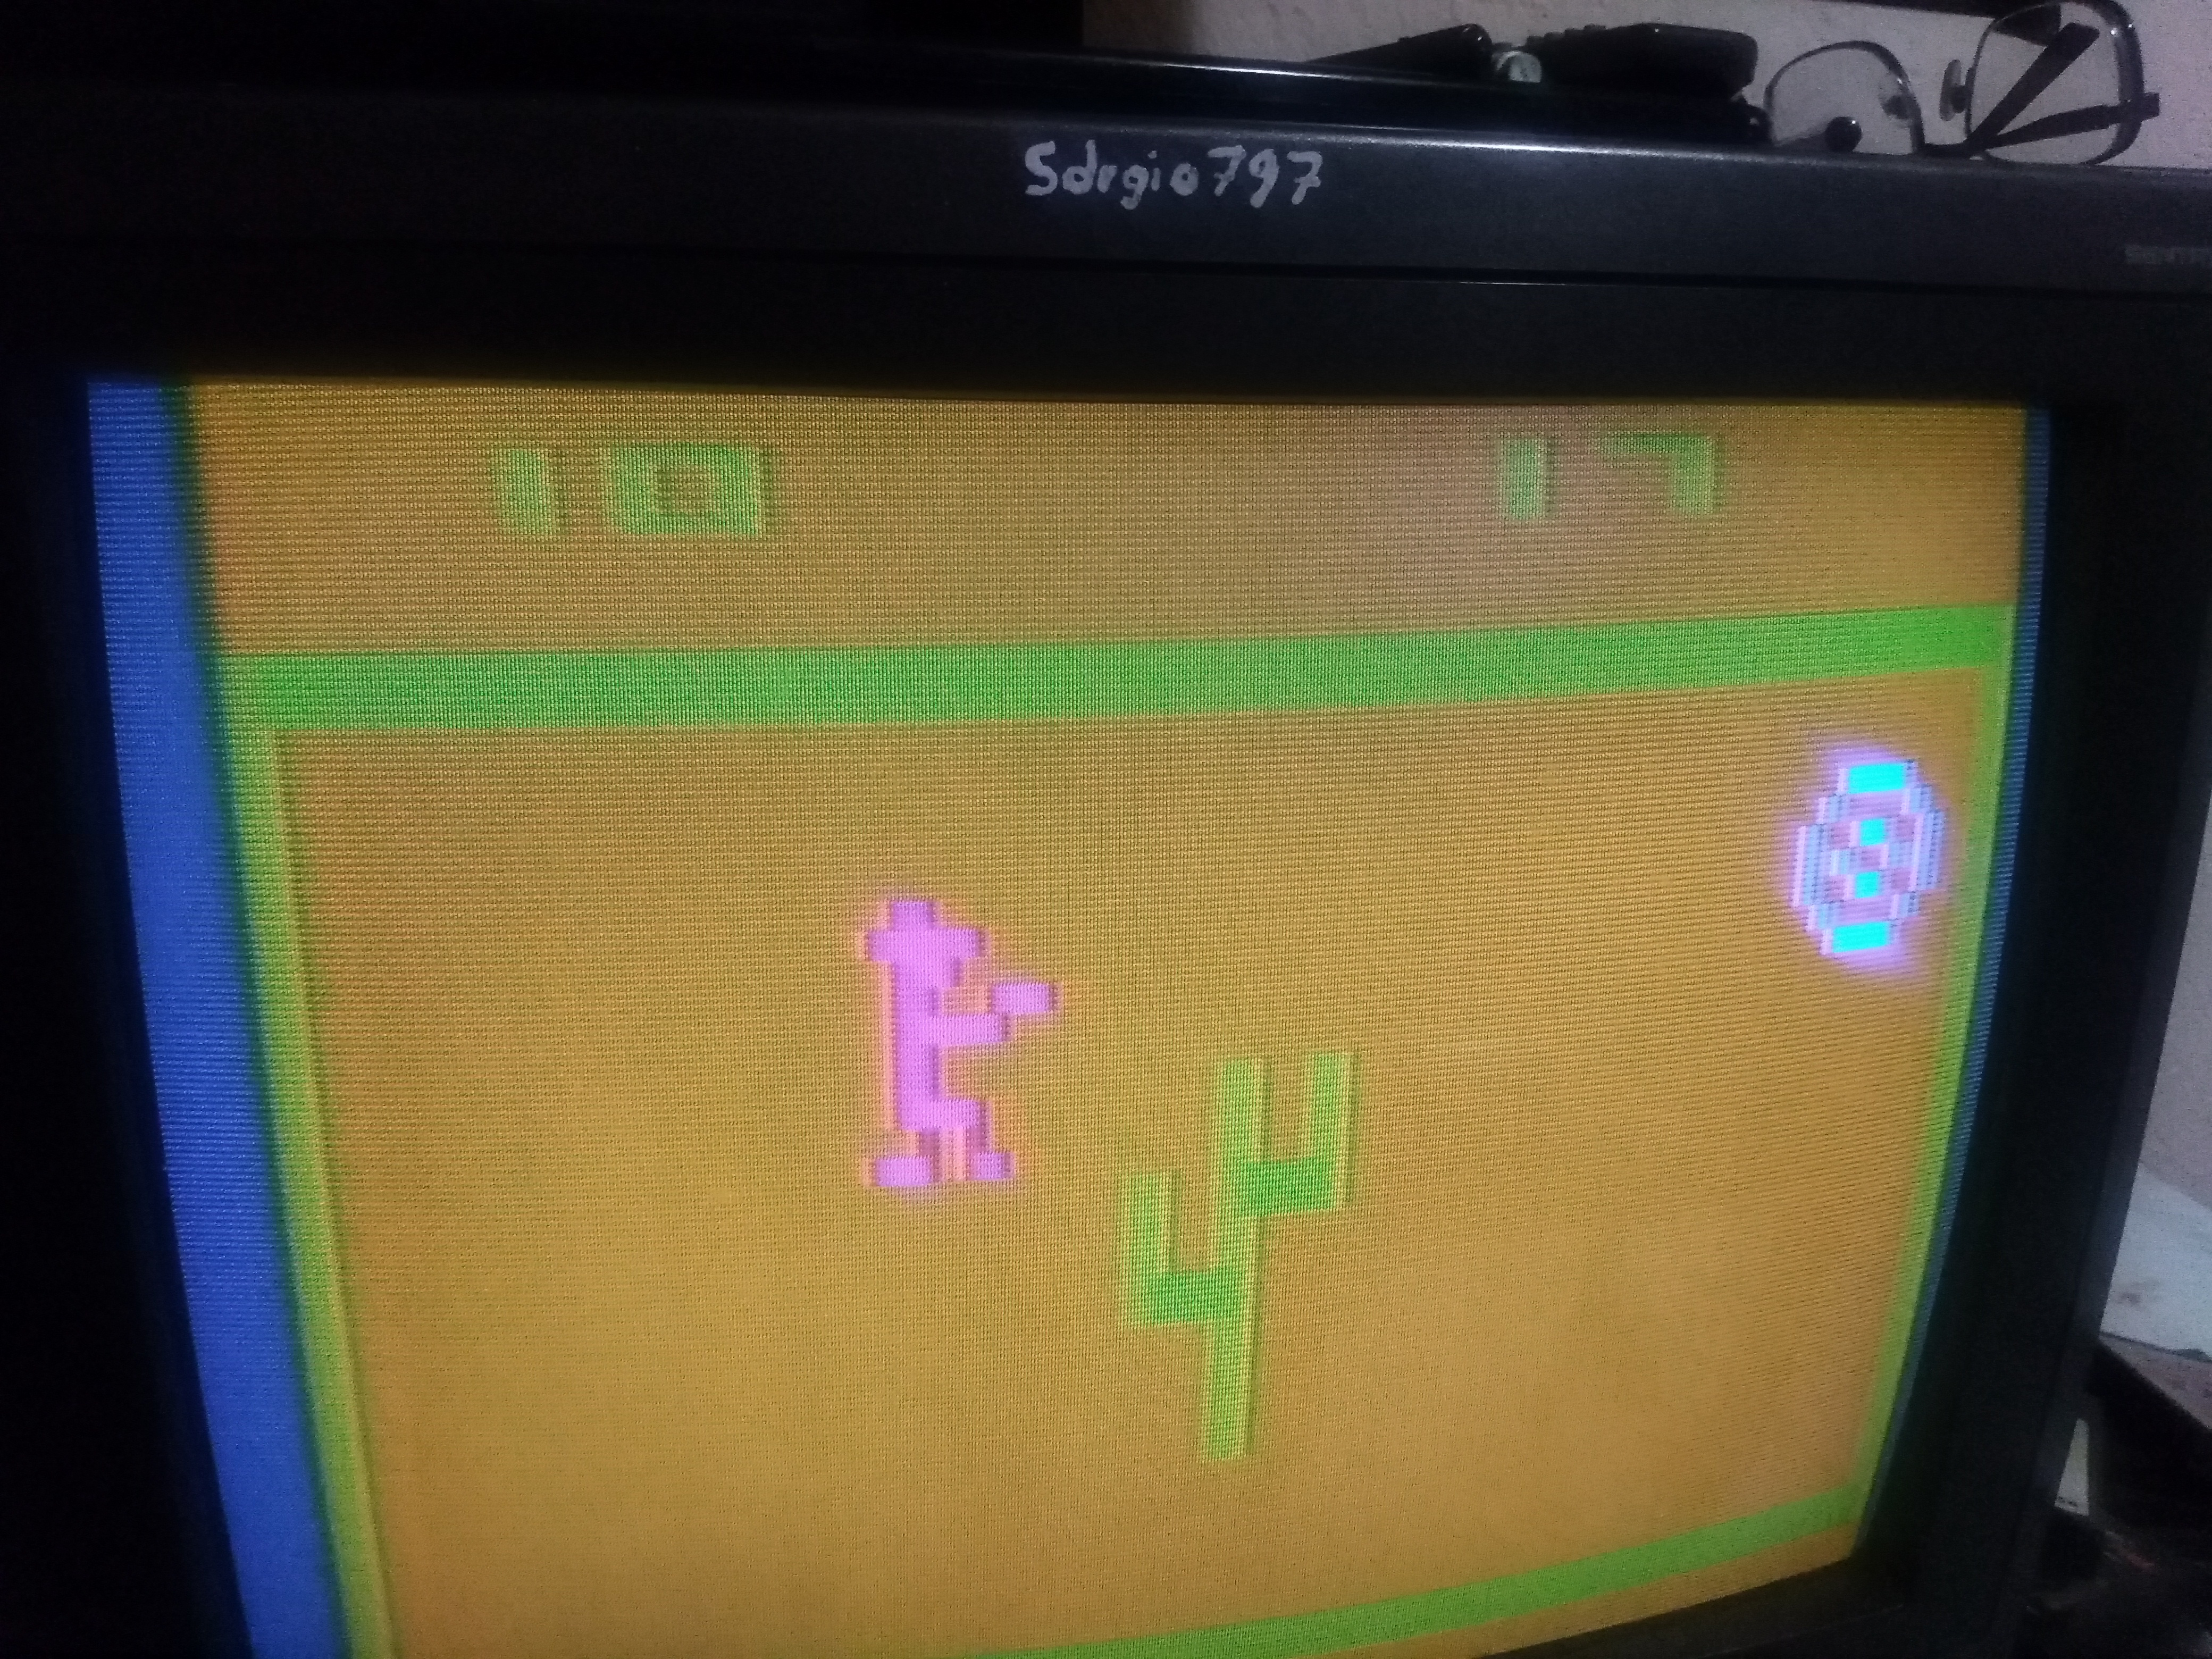 Sdrgio797: Outlaw: Game 13 [Fastest Time to 10 points] (Atari 2600 Expert/A) 0:00:17 points on 2020-07-04 05:12:21